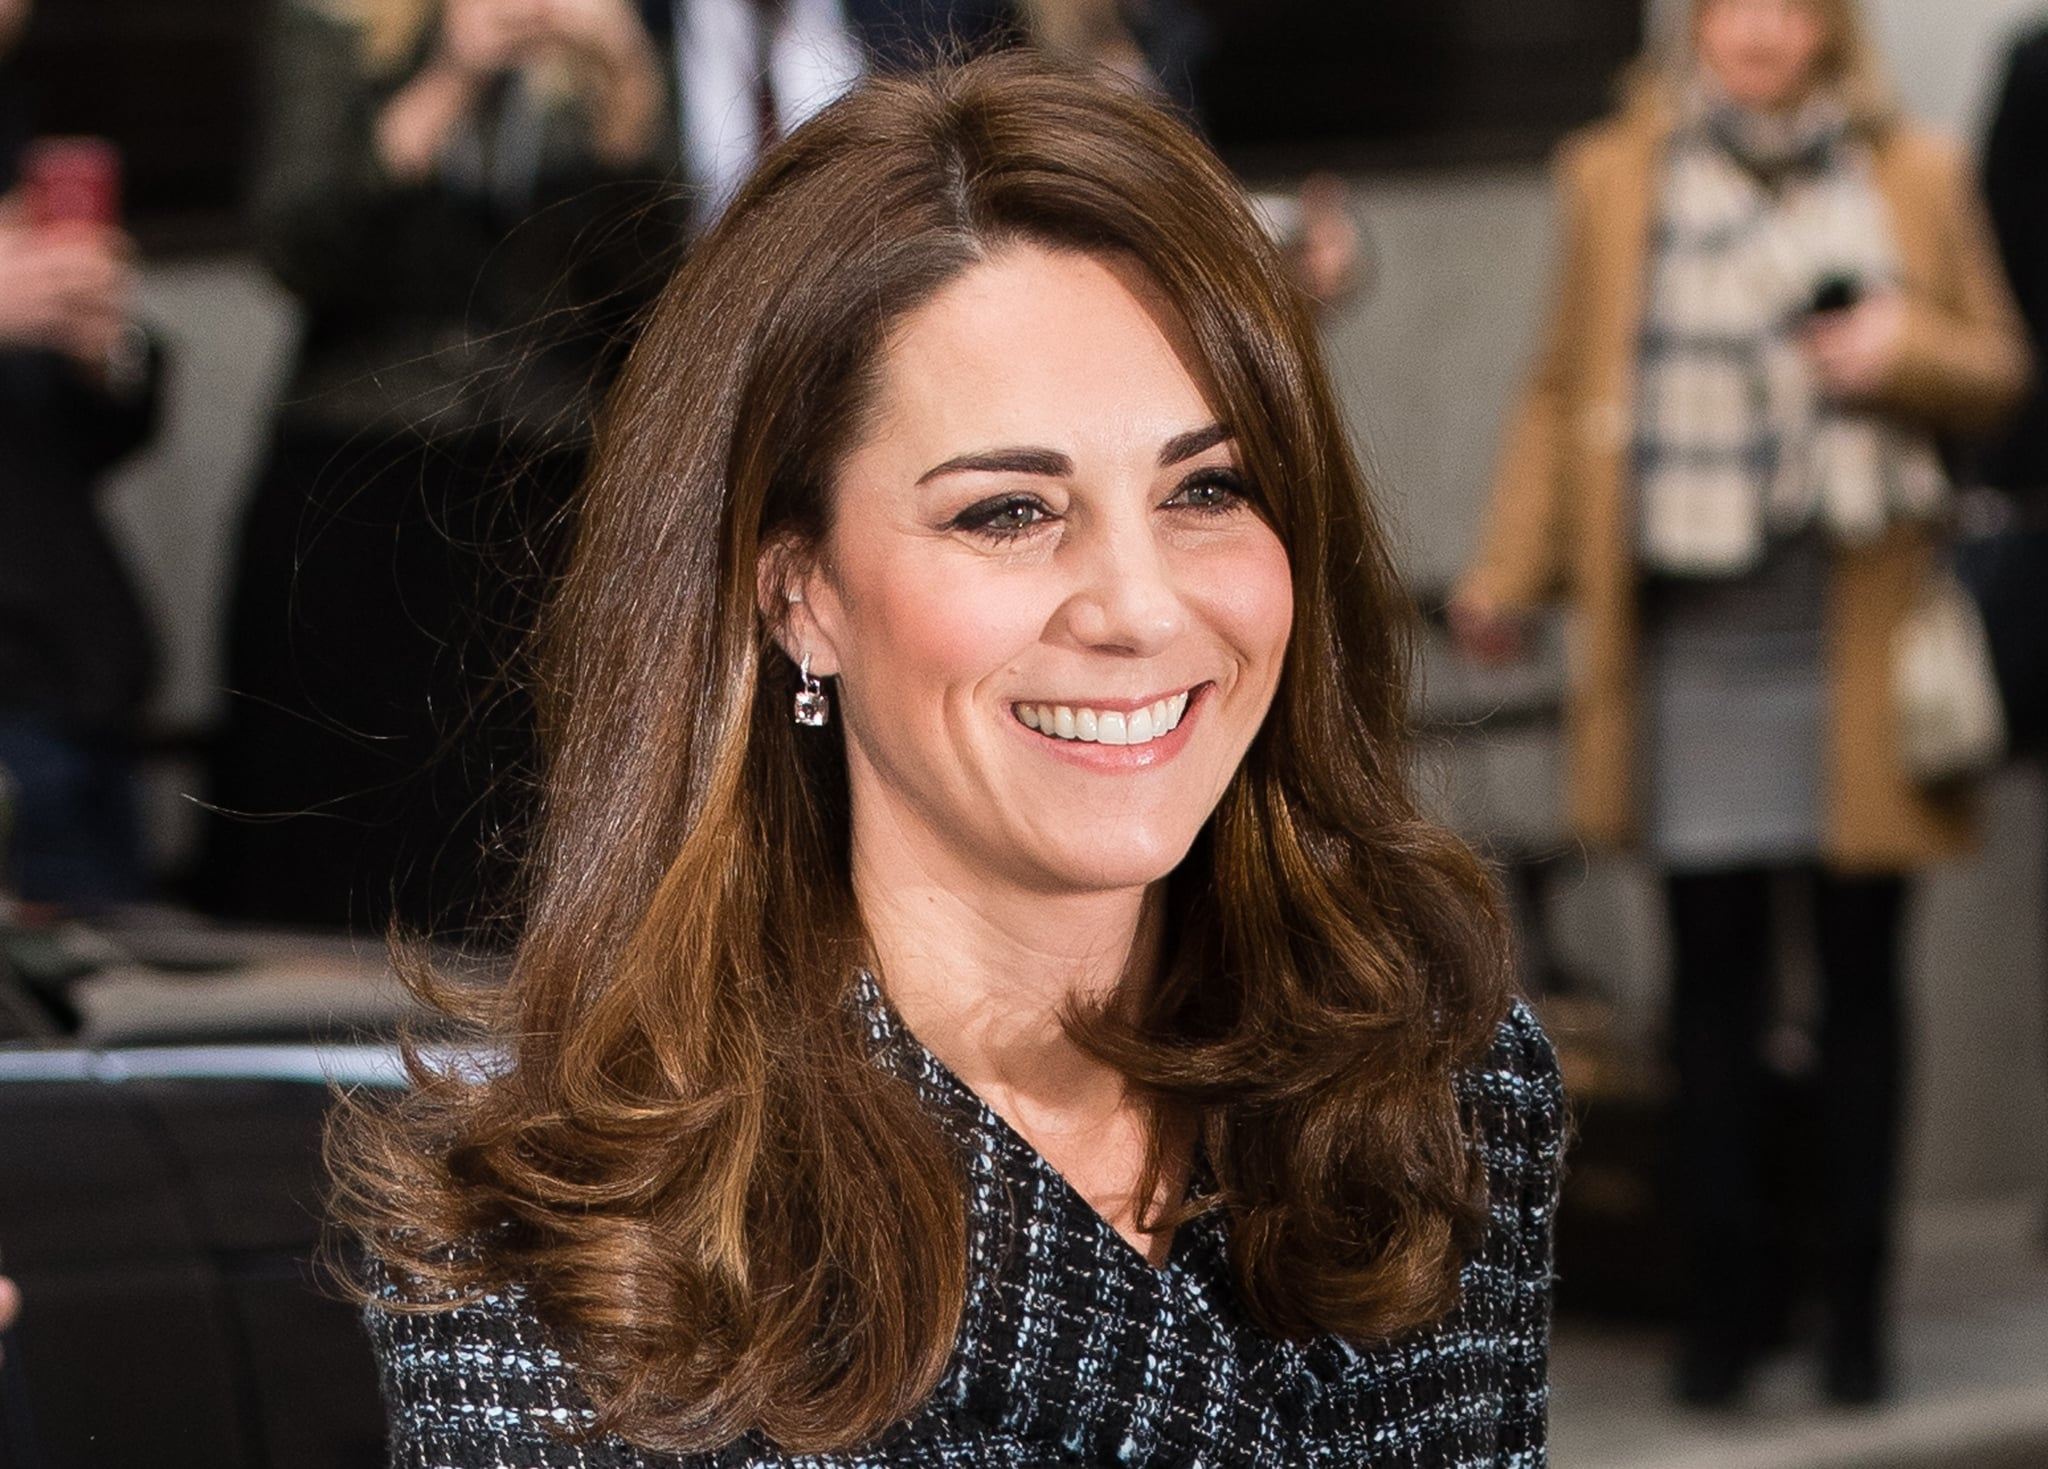 LONDON, ENGLAND - FEBRUARY 13: Catherine, Duchess of Cambridge attends a 'Mental Health In Education' conference at Mercers' Hall on February 13, 2019 in London, England. The conference will bring together delegates from across the mental health and education sectors to explore and discuss the benefits of collaborative working and what more can be done to tackle mental health issues in schools. (Photo by Samir Hussein/Samir Hussein/WireImage)